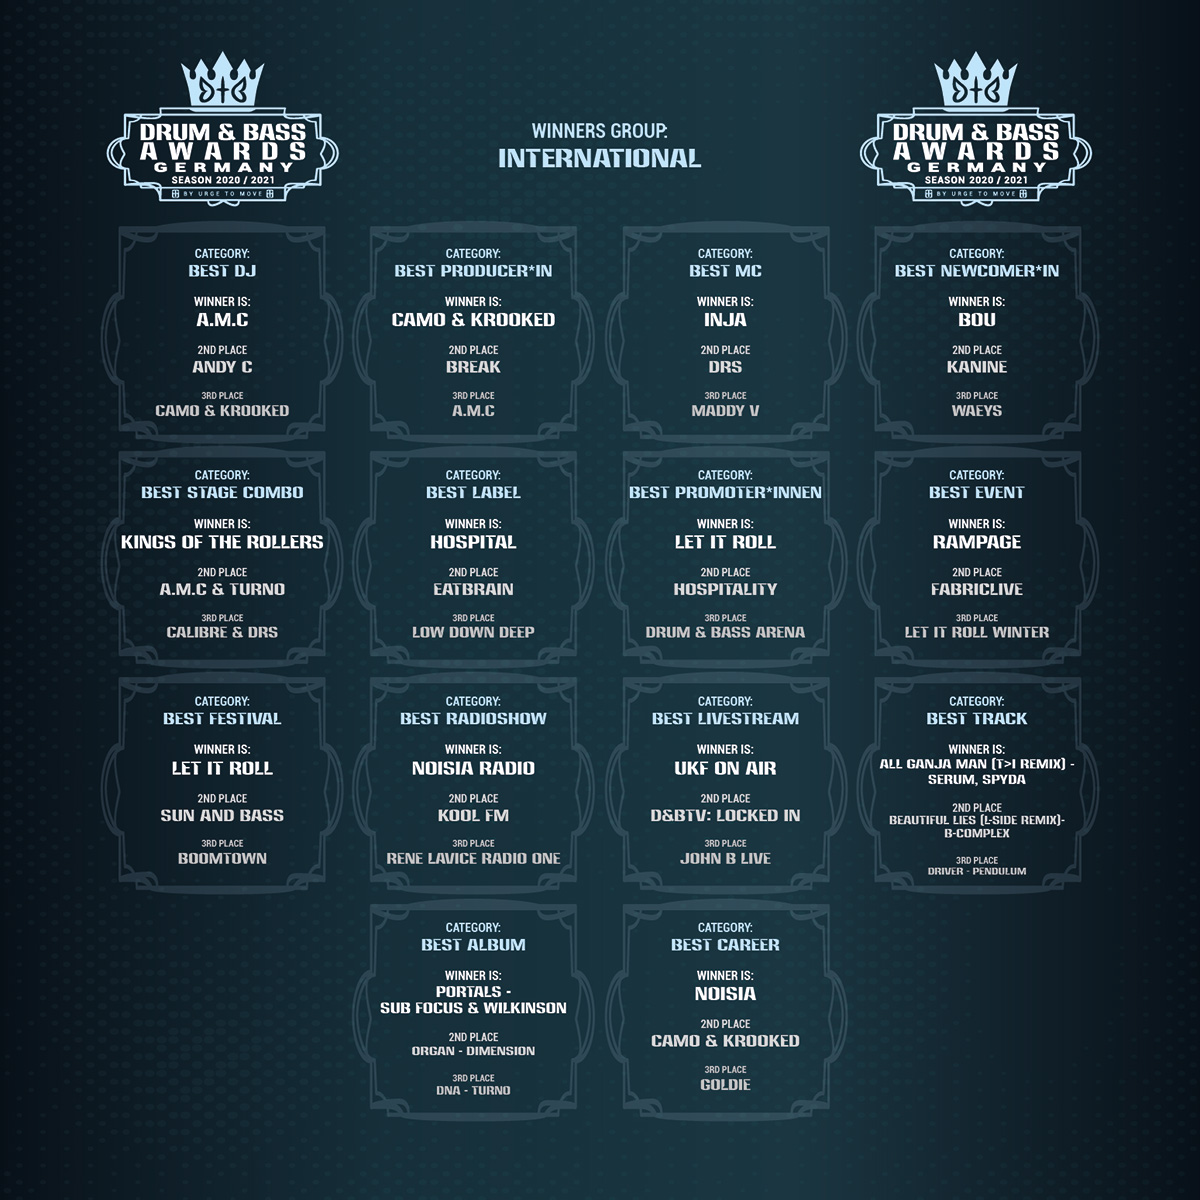 Drum and Bass Awards Germany - INTERNATIONAL